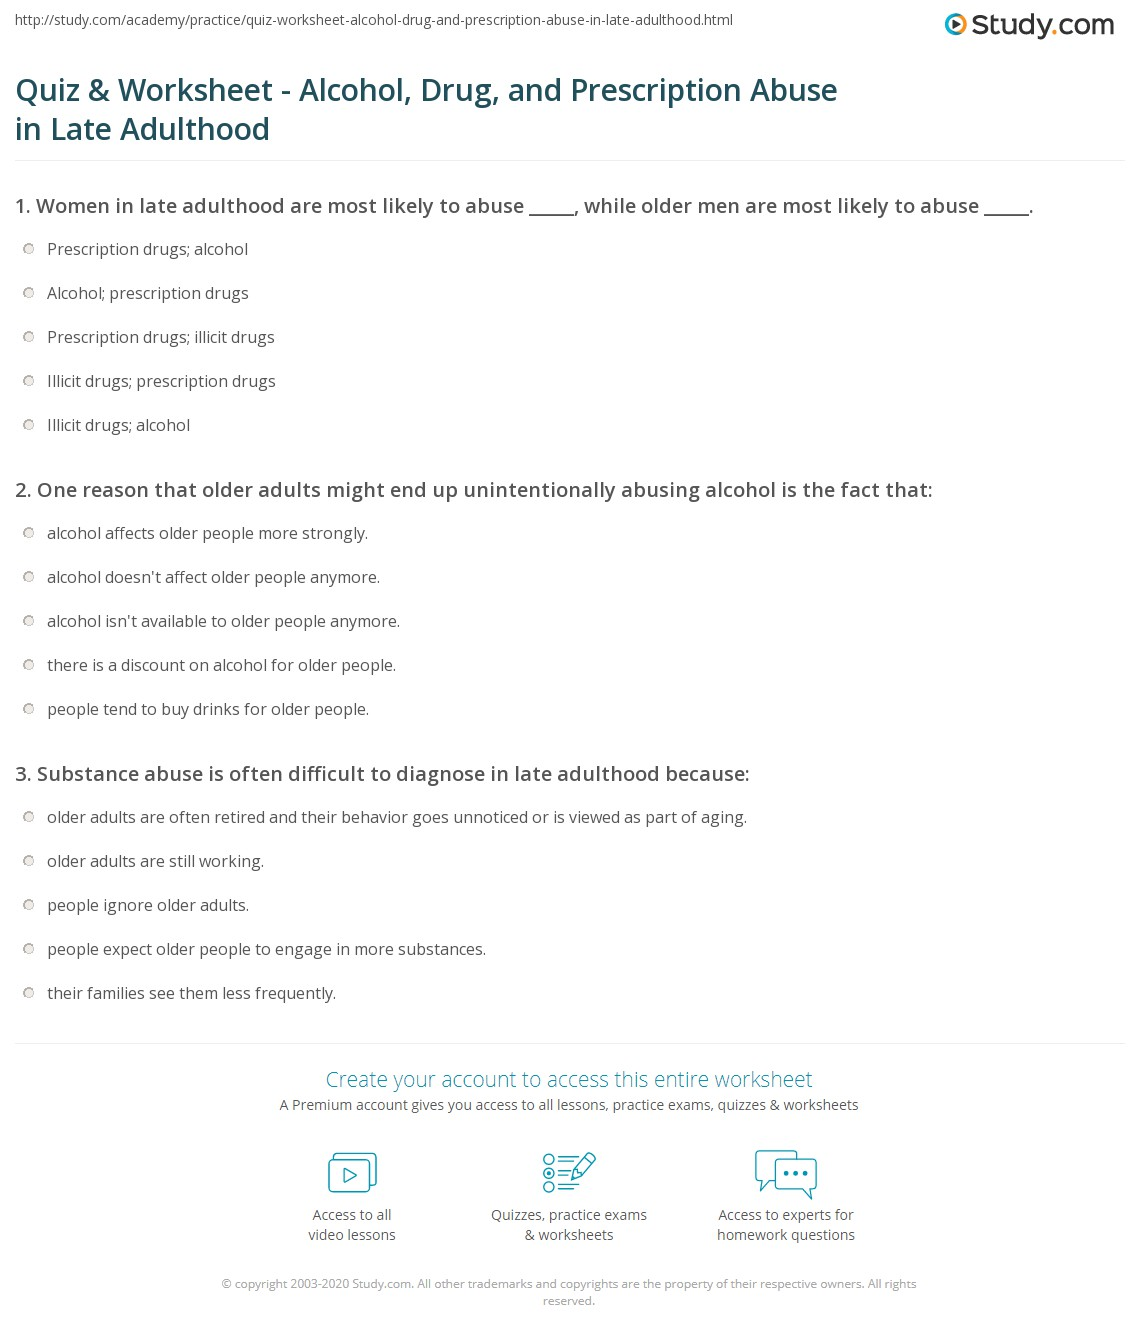 Printables Substance Abuse Worksheets For Adults quiz worksheet alcohol drug and prescription abuse in late print adulthood worksheet